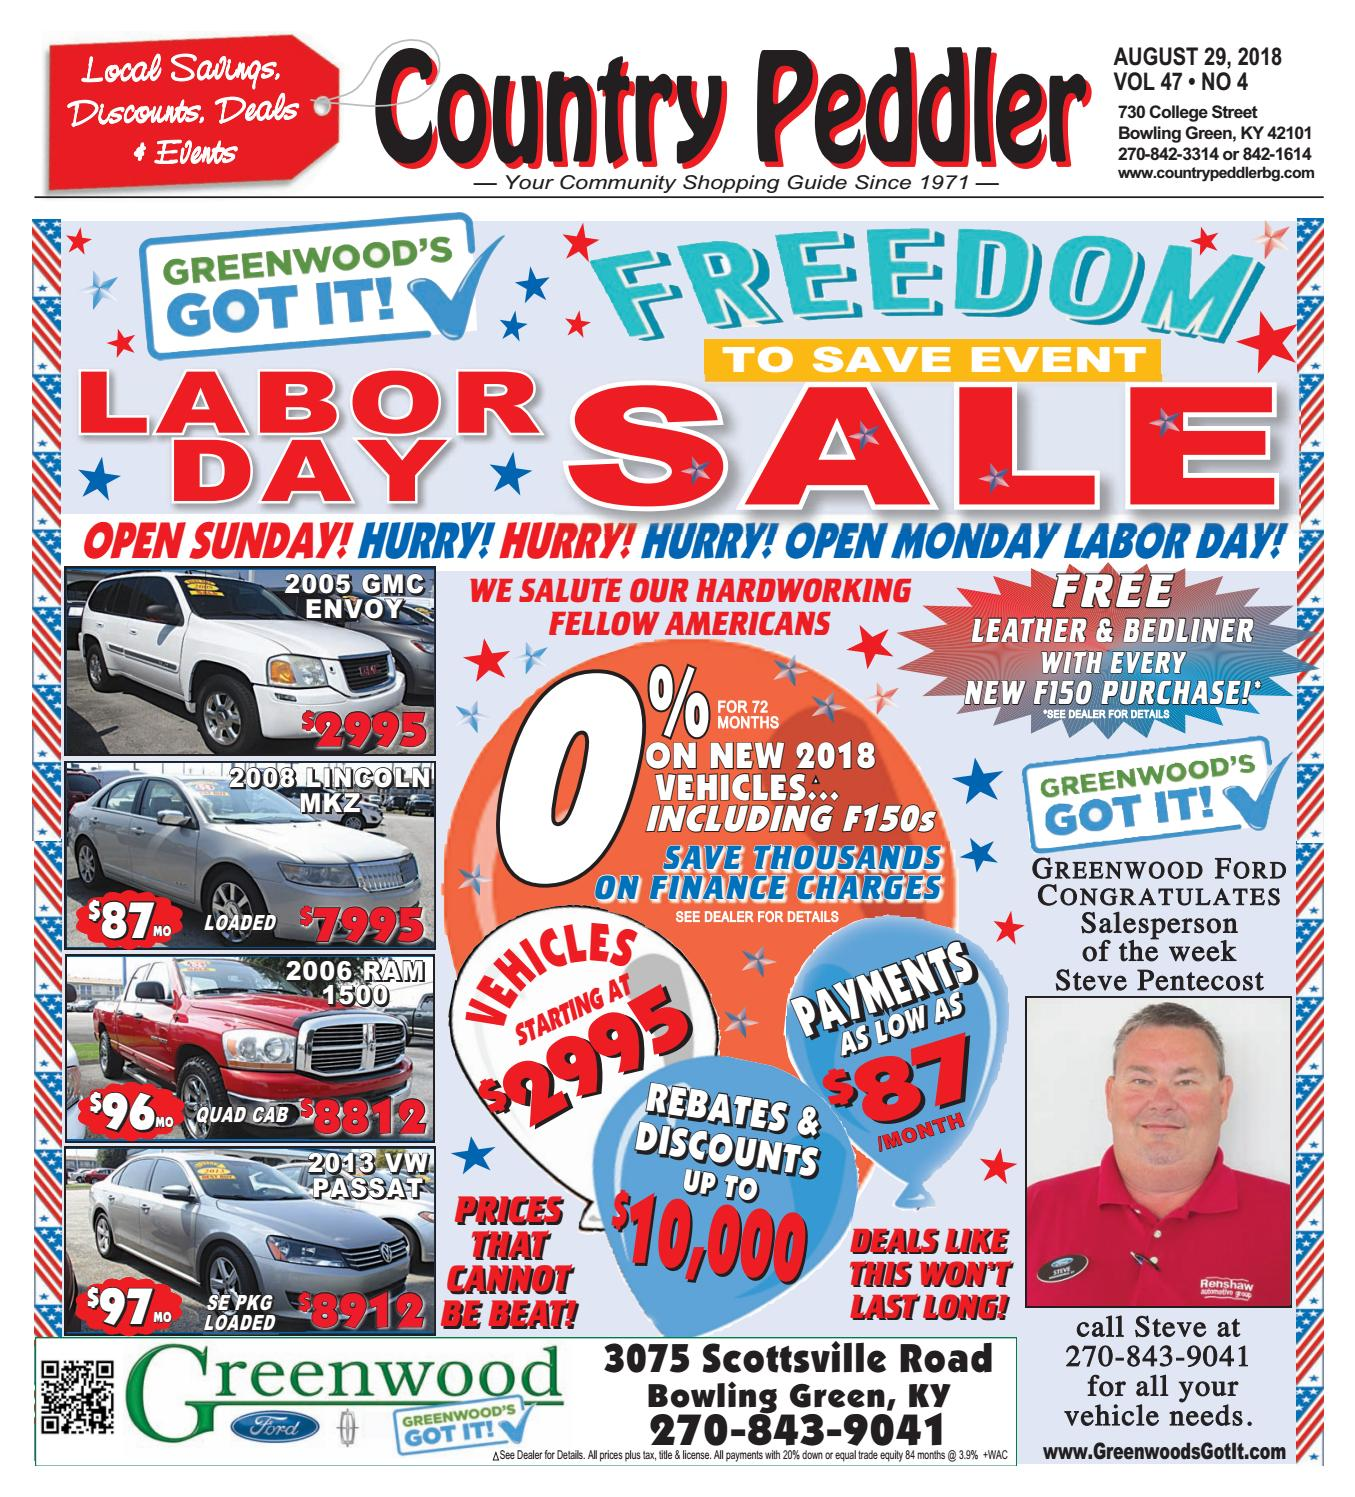 Country Peddler 8 29 18 by Country Peddler - issuu